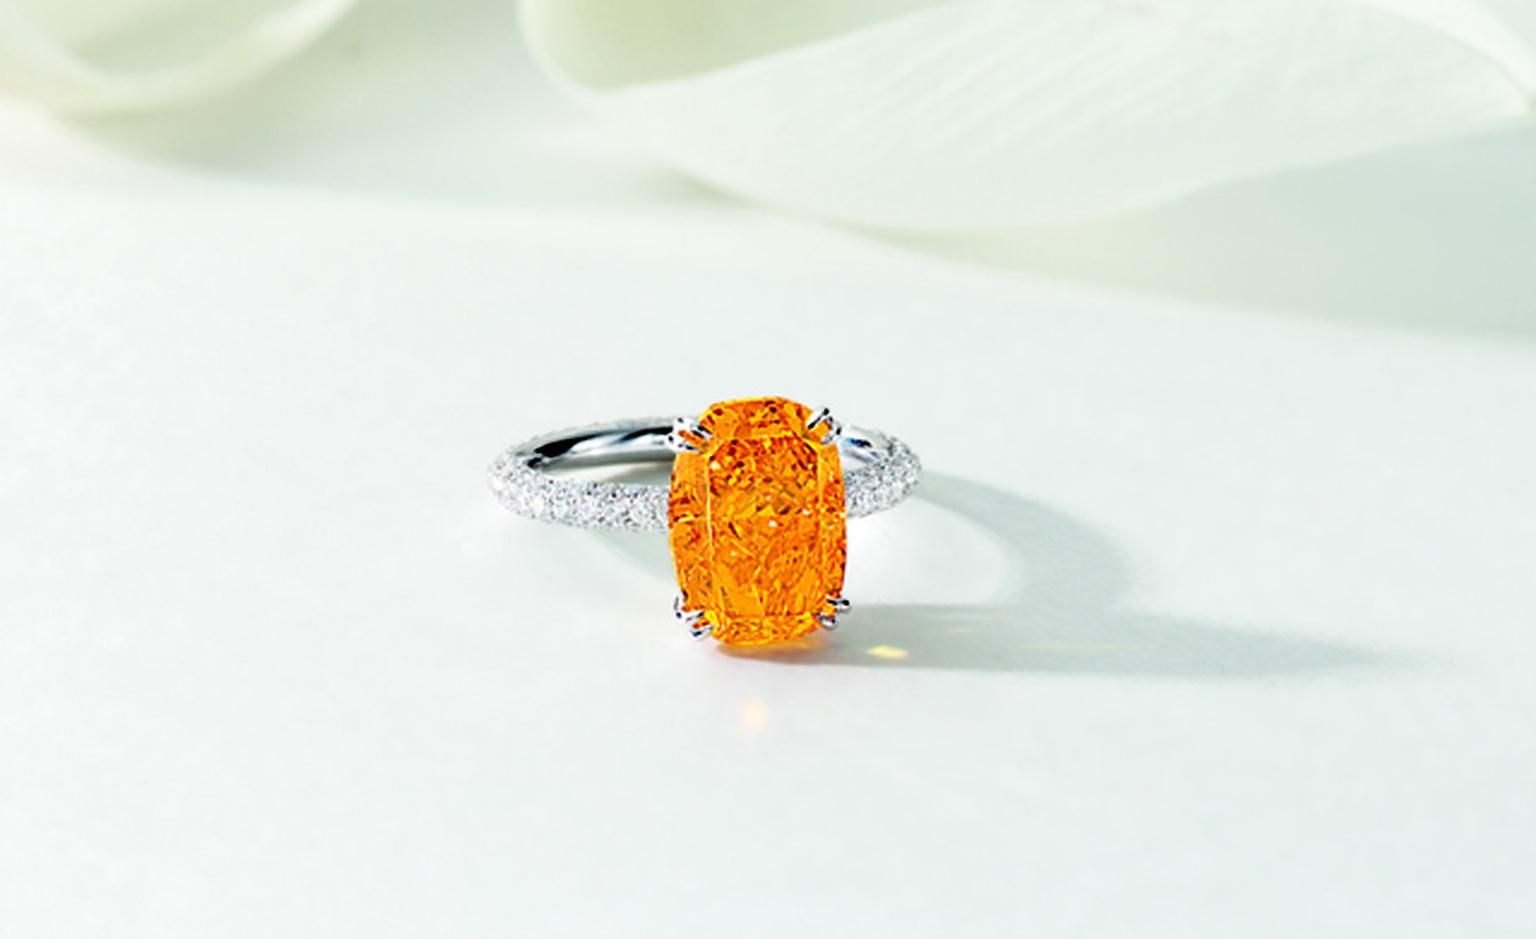 LOT 2669. Very rare and exquisite fancy vivid orange diamond ring. EST 19,000,000 - 23,000,000 HKD. LOT SOLD 23,060,000 HKD